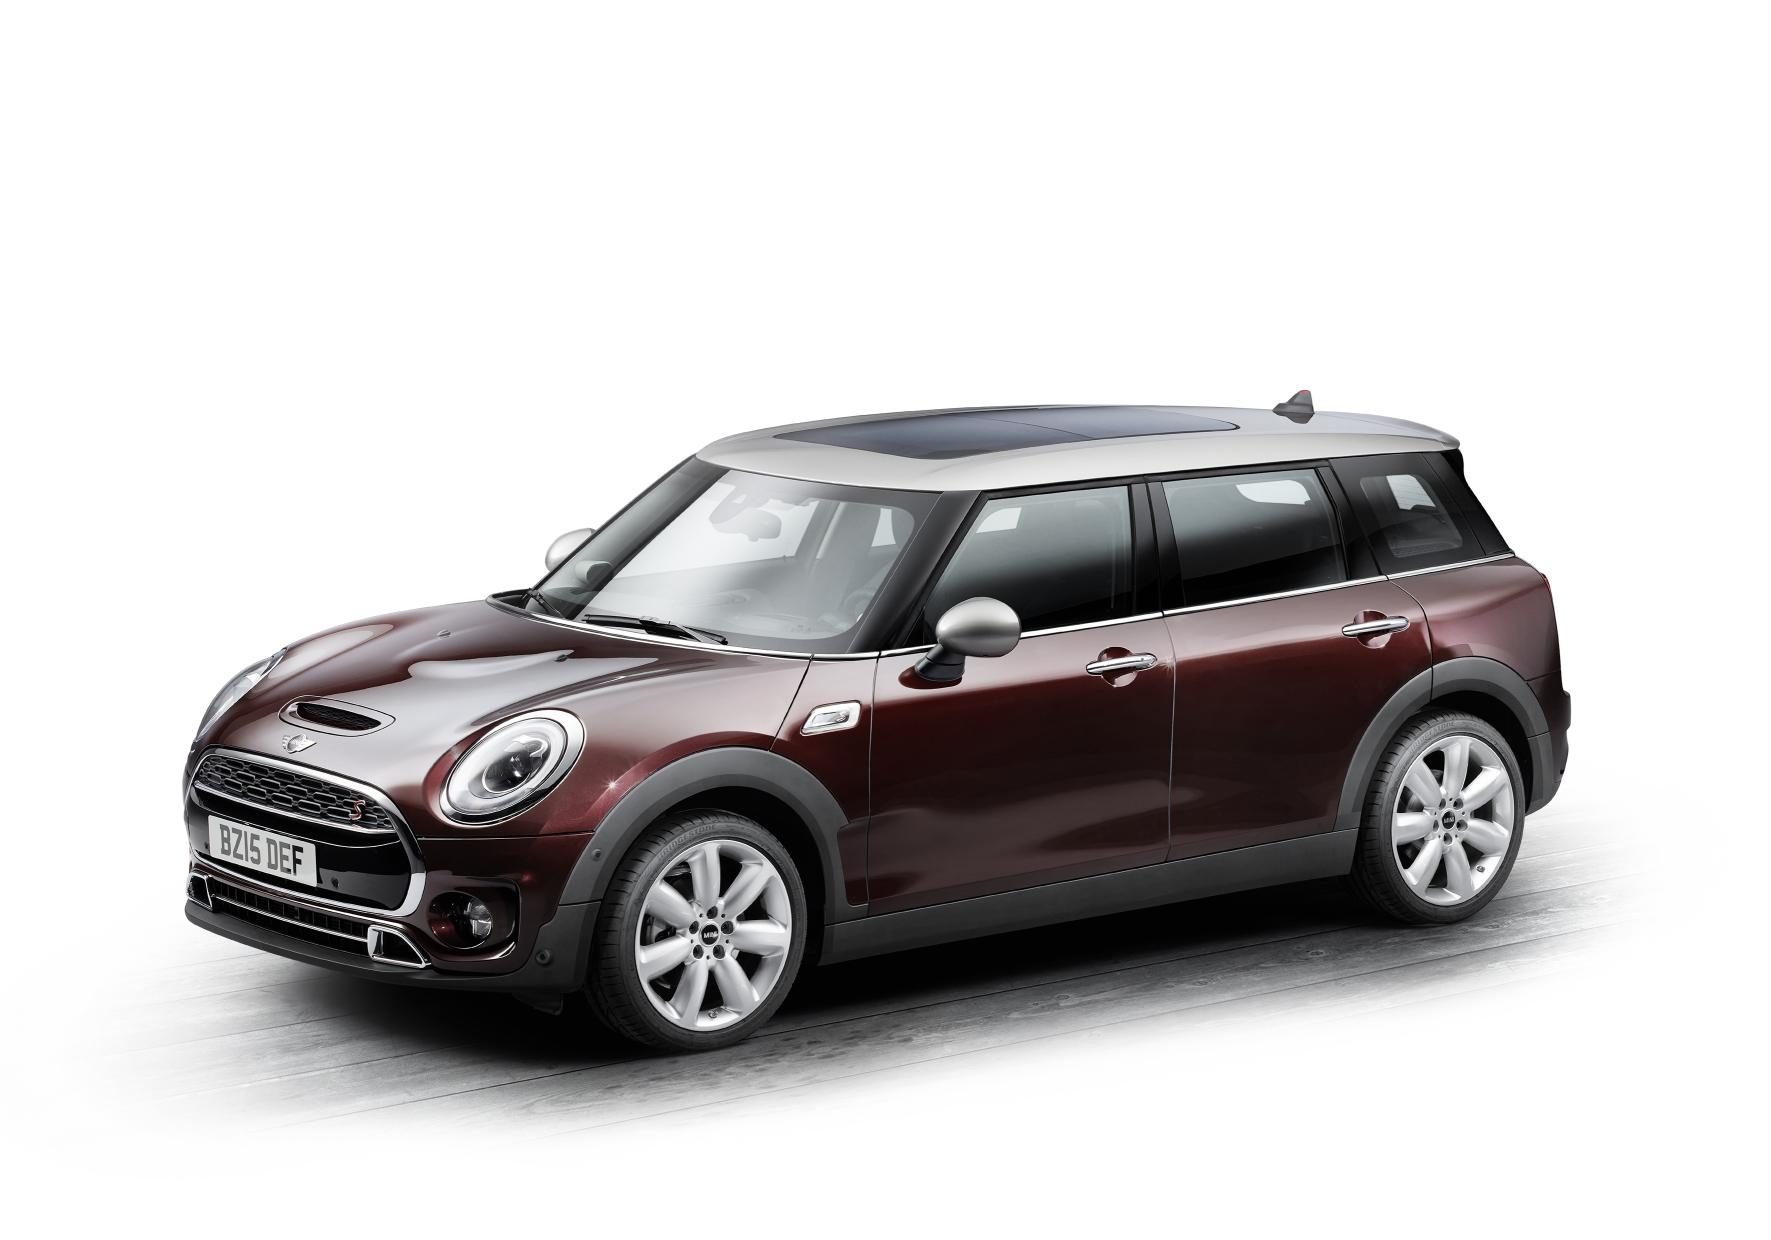 New MINI Clubman unveiled